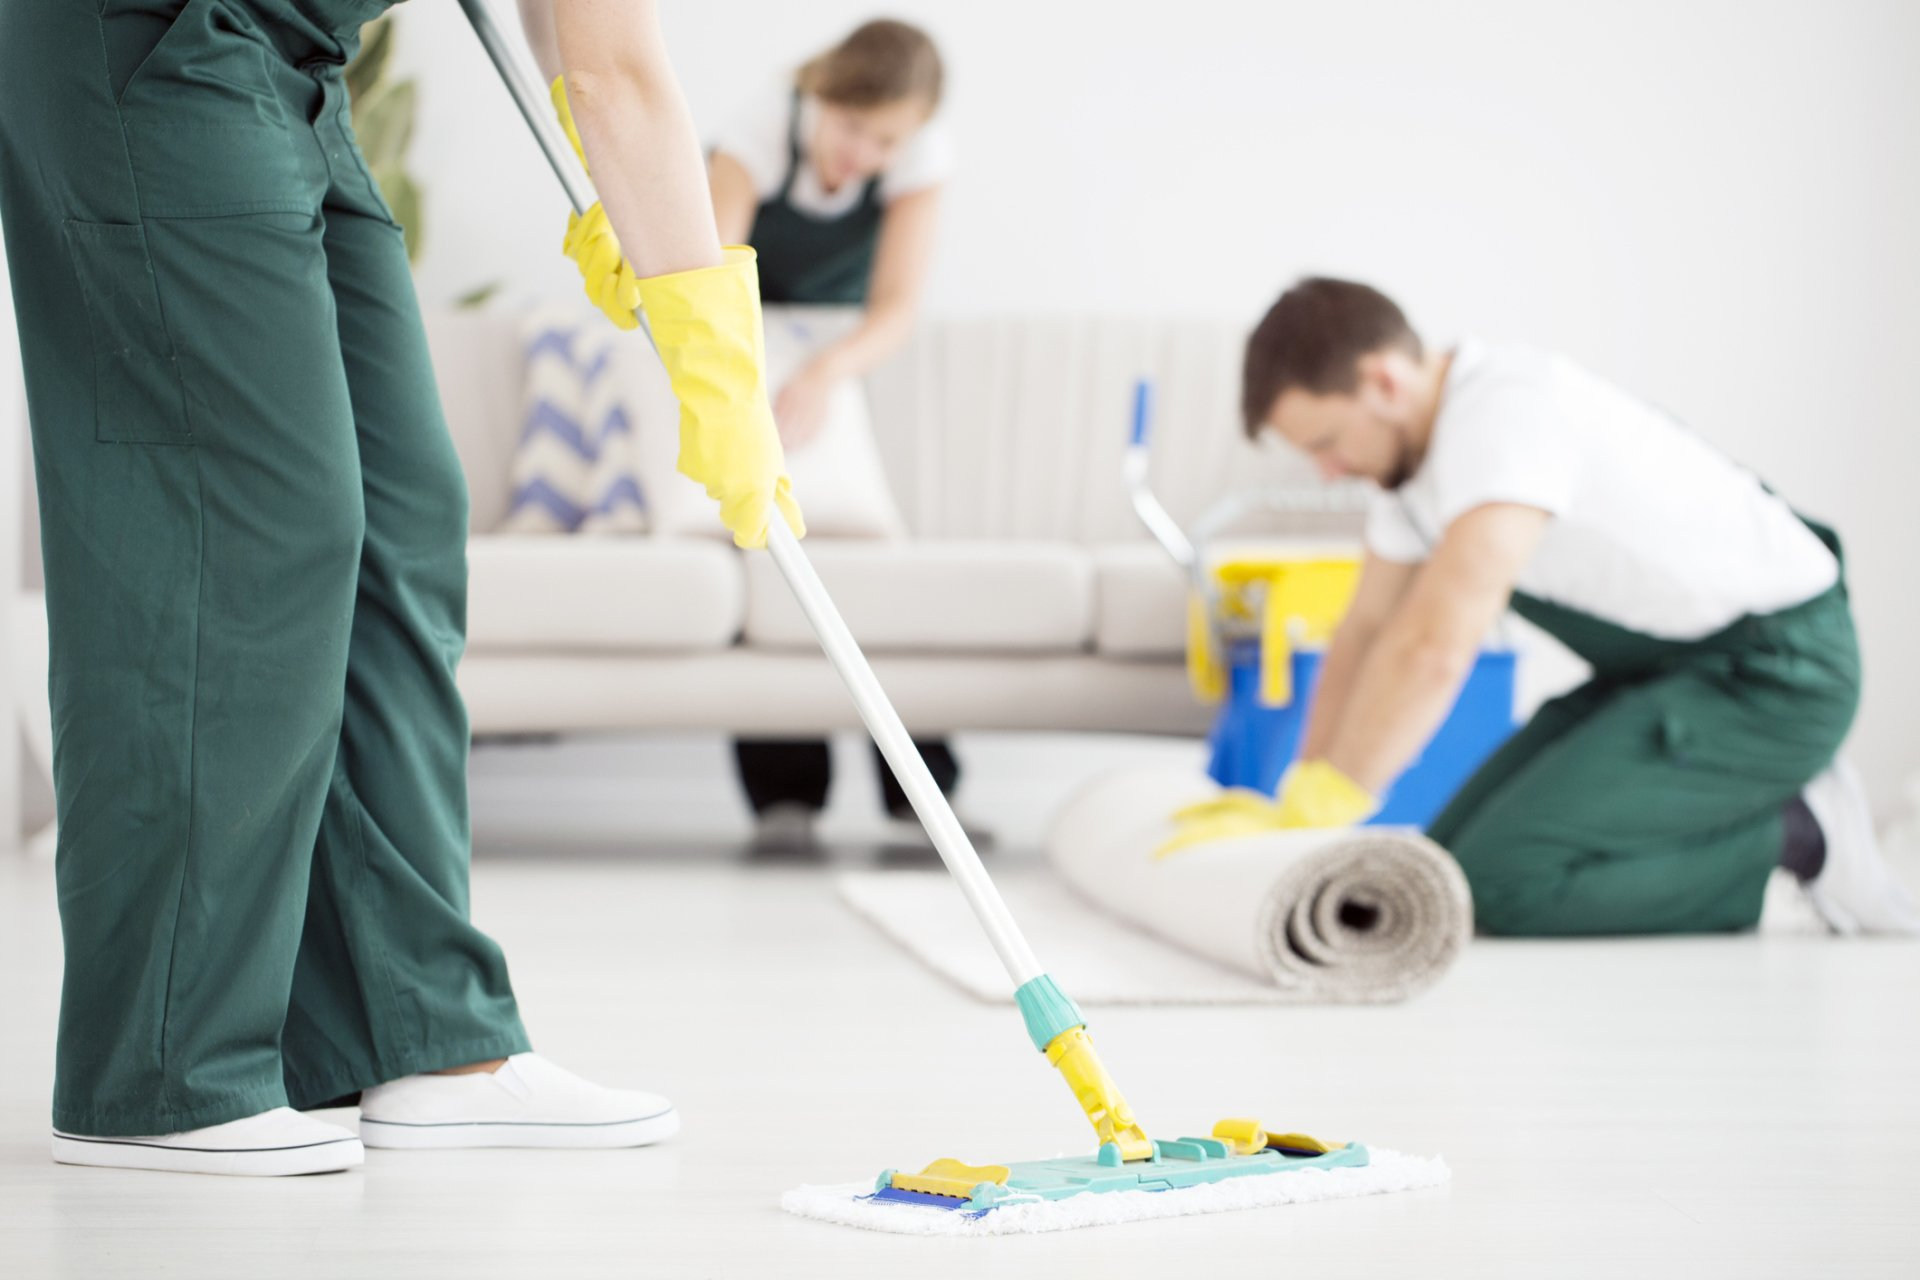 Benefits of Carpet Cleaning for Healthy & Clean Environment